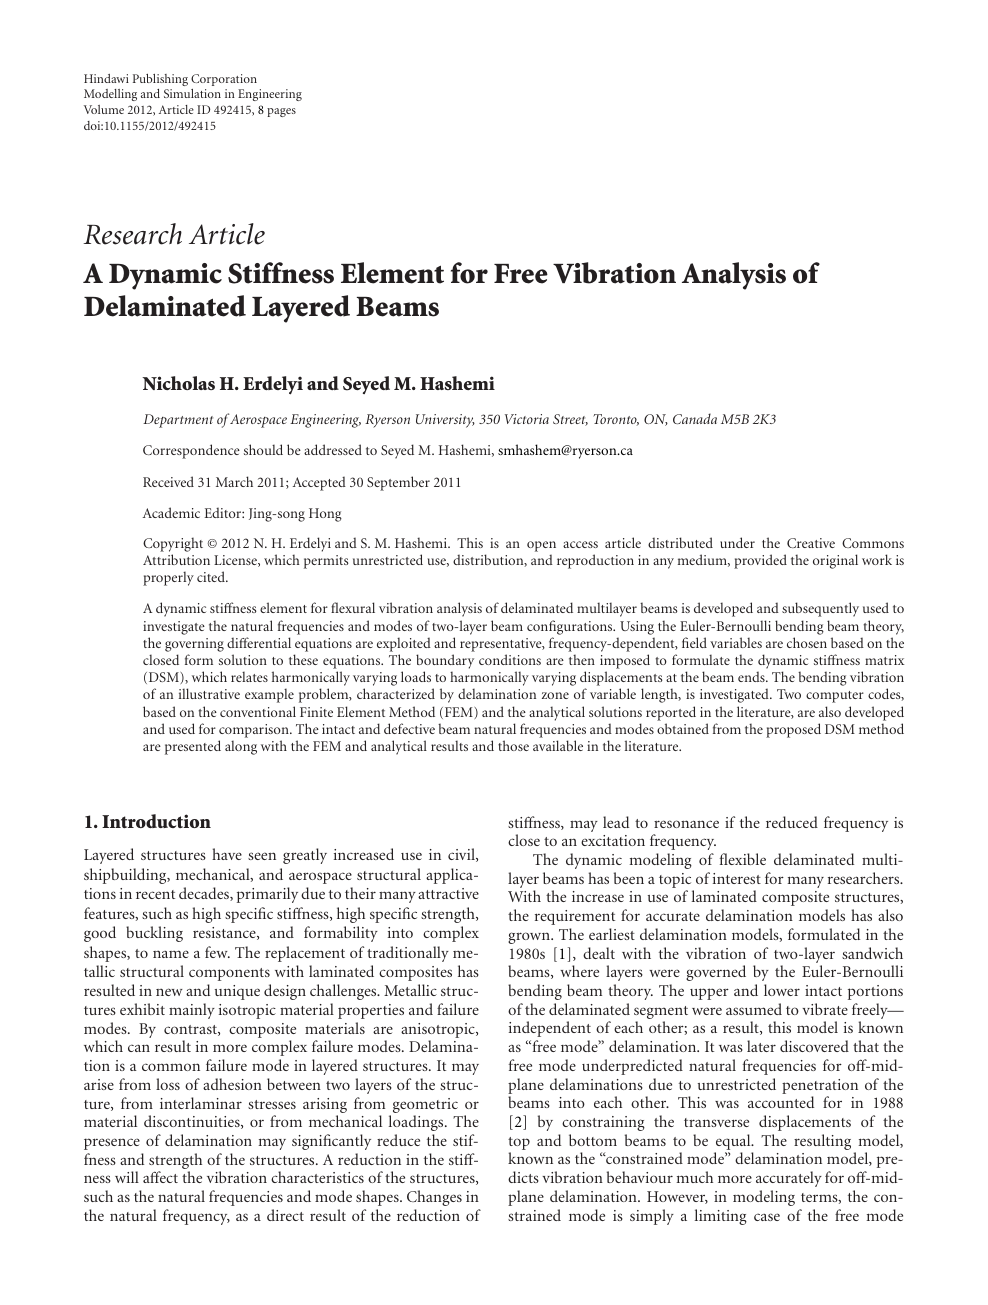 A Dynamic Stiffness Element for Free Vibration Analysis of